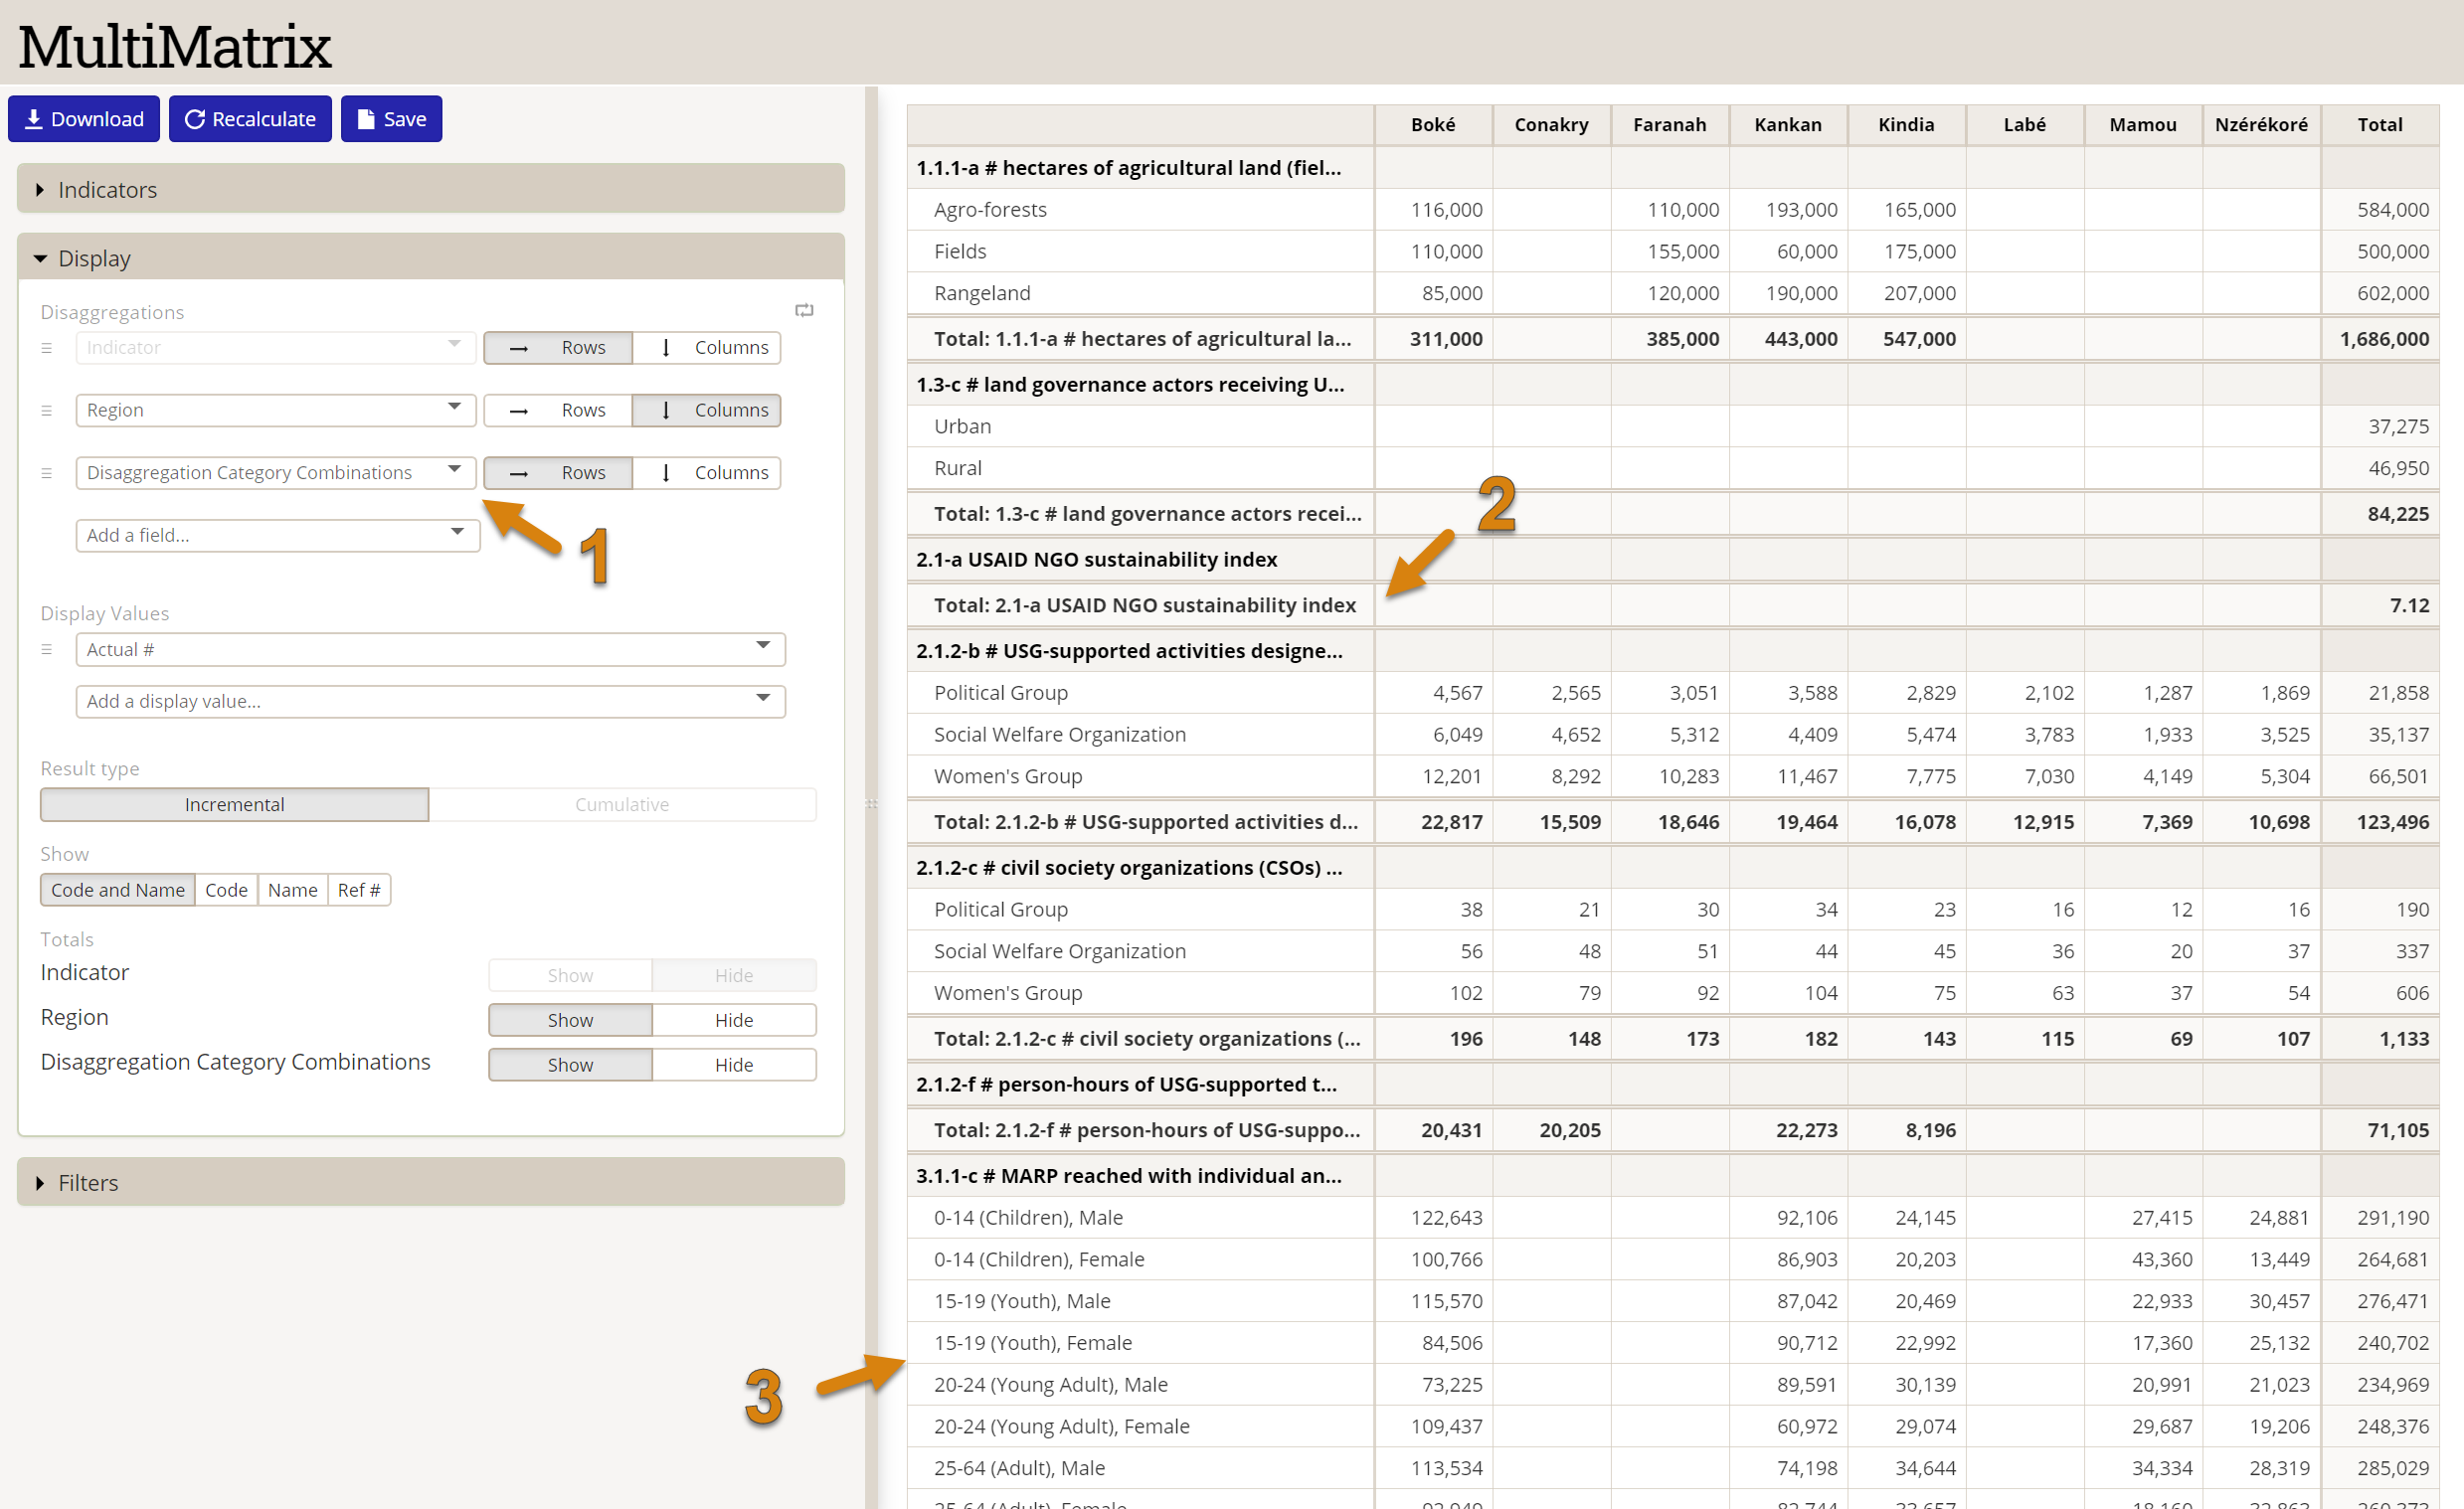 Screenshot showing Disaggregation Category Combination in action